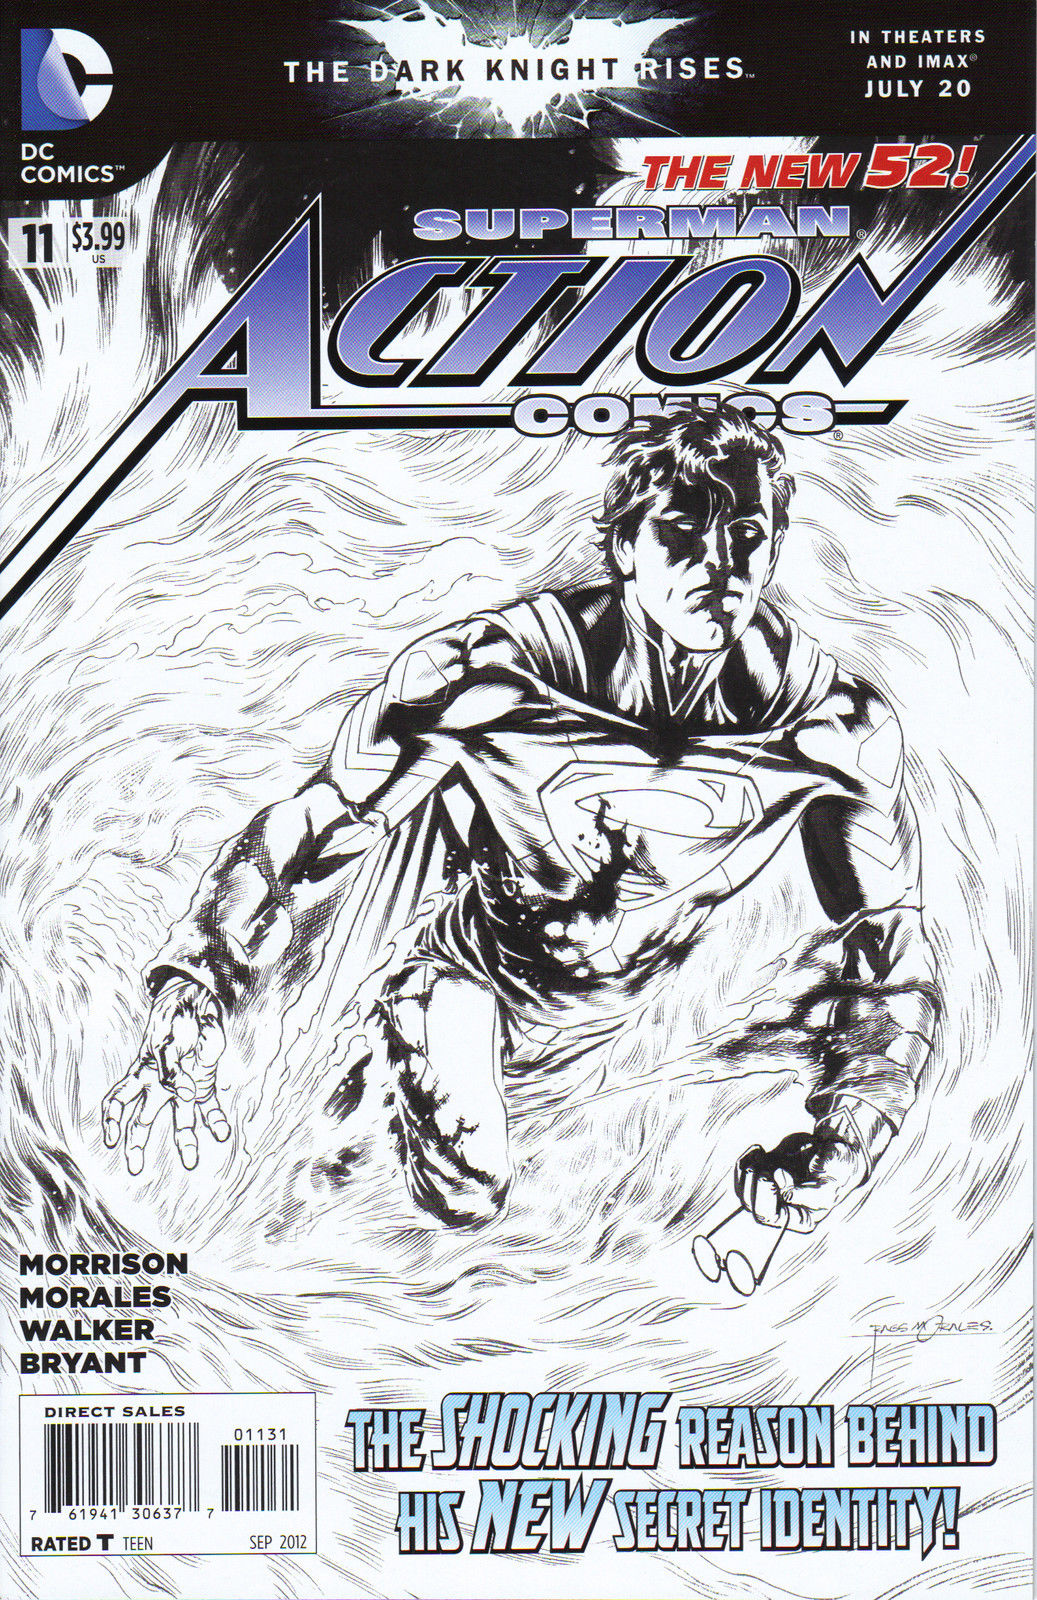 Action Comics (The New 52) #11 Black & White Variant